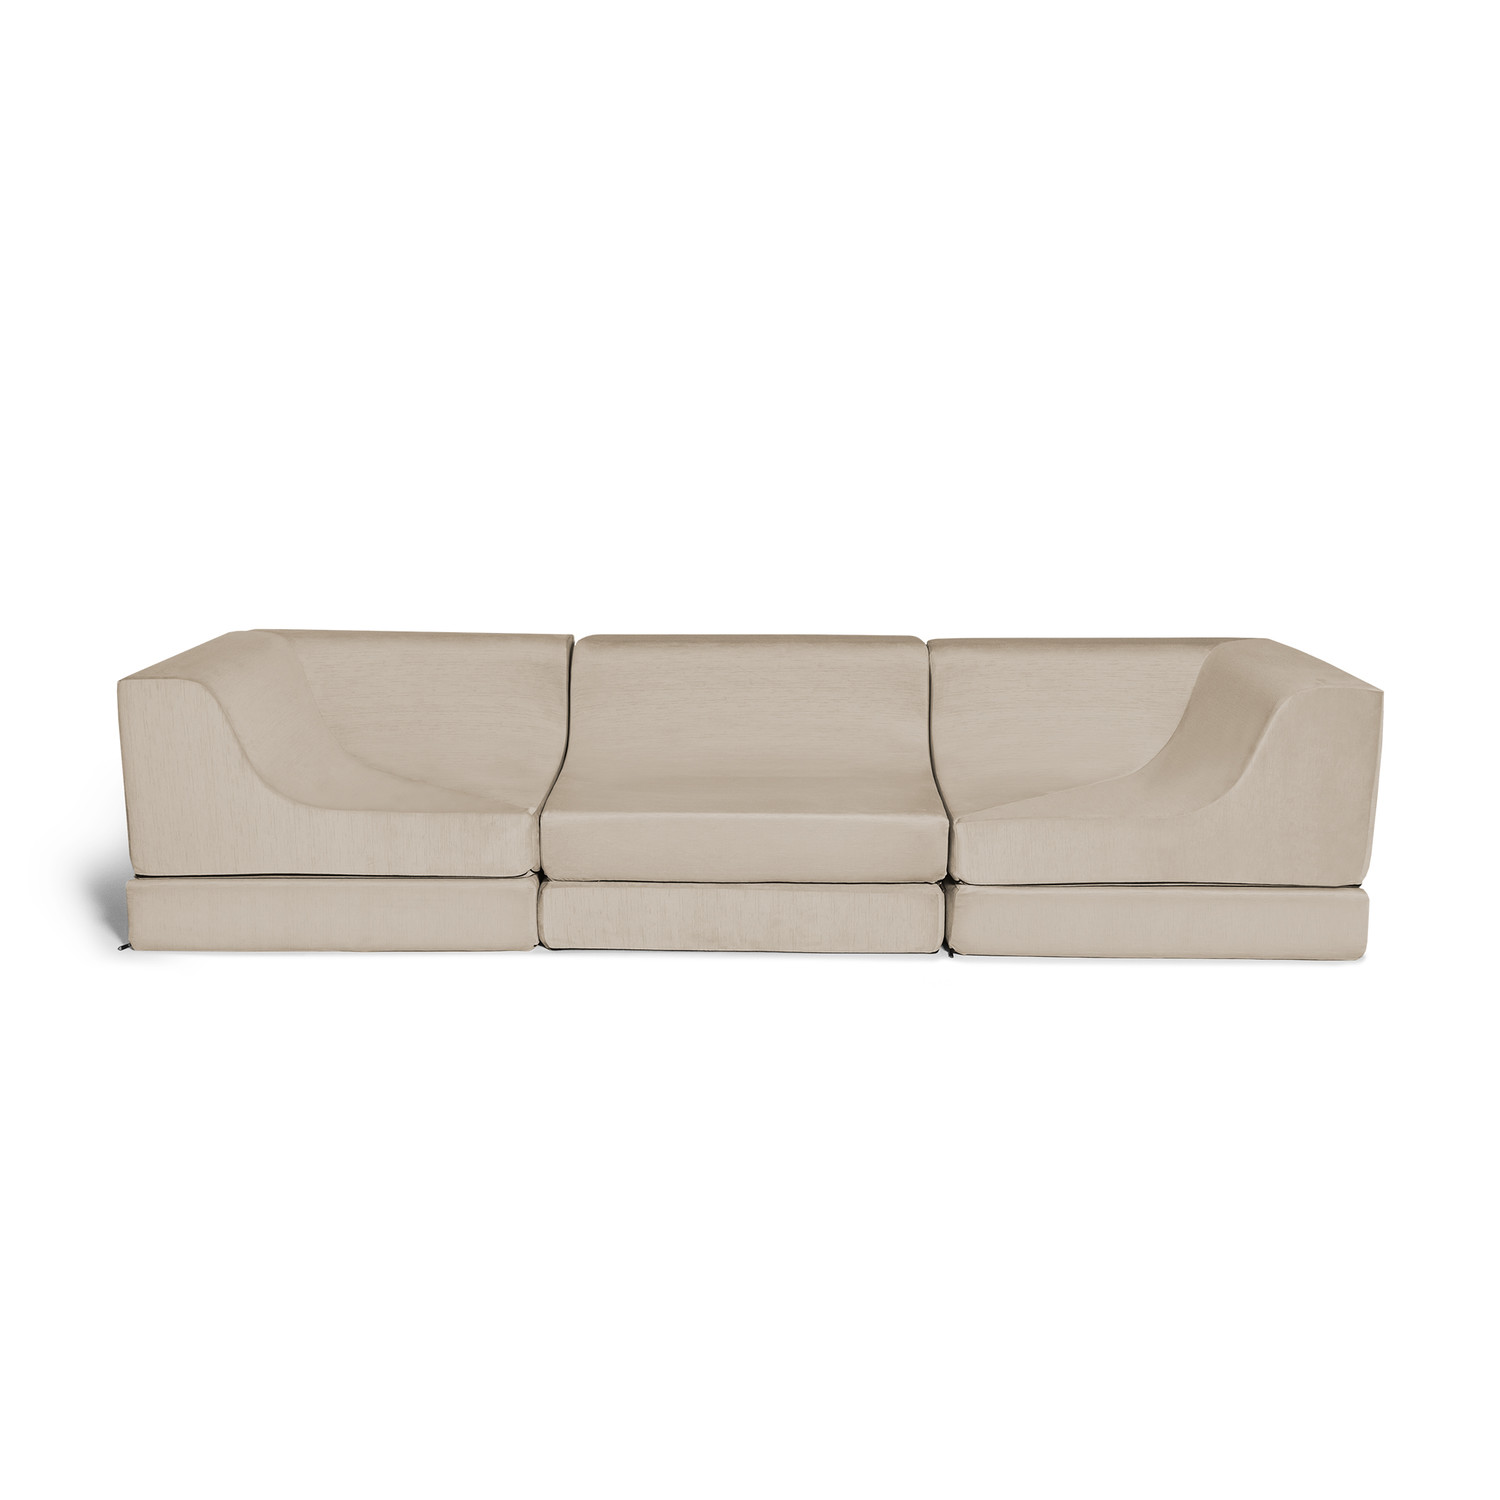 ivory sofa cover leather glue modular jaxx casual living touch of modern